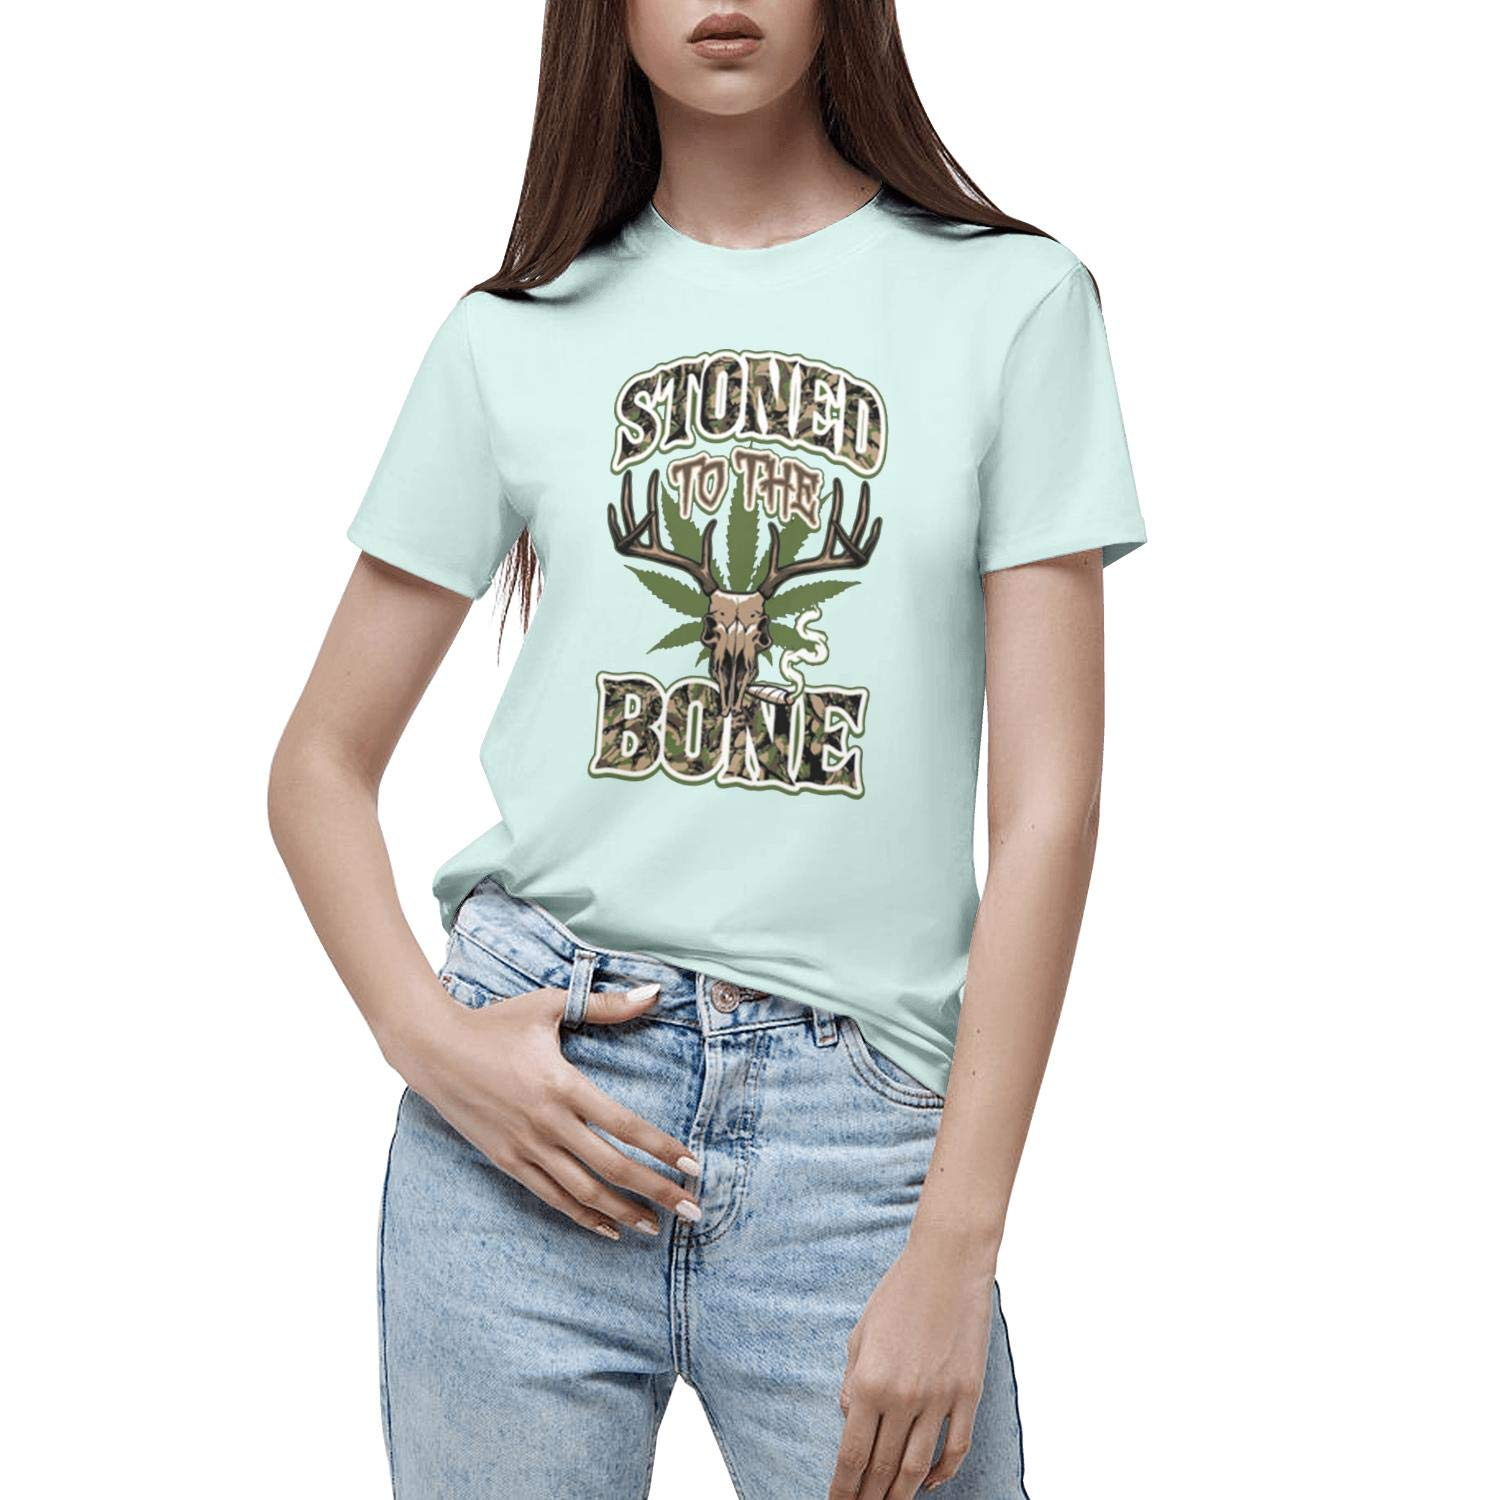 LunchBaggg 420 Cannabis Culture Girls Graphic Tees Short Sleeve Round Neck Athletic T Shirts